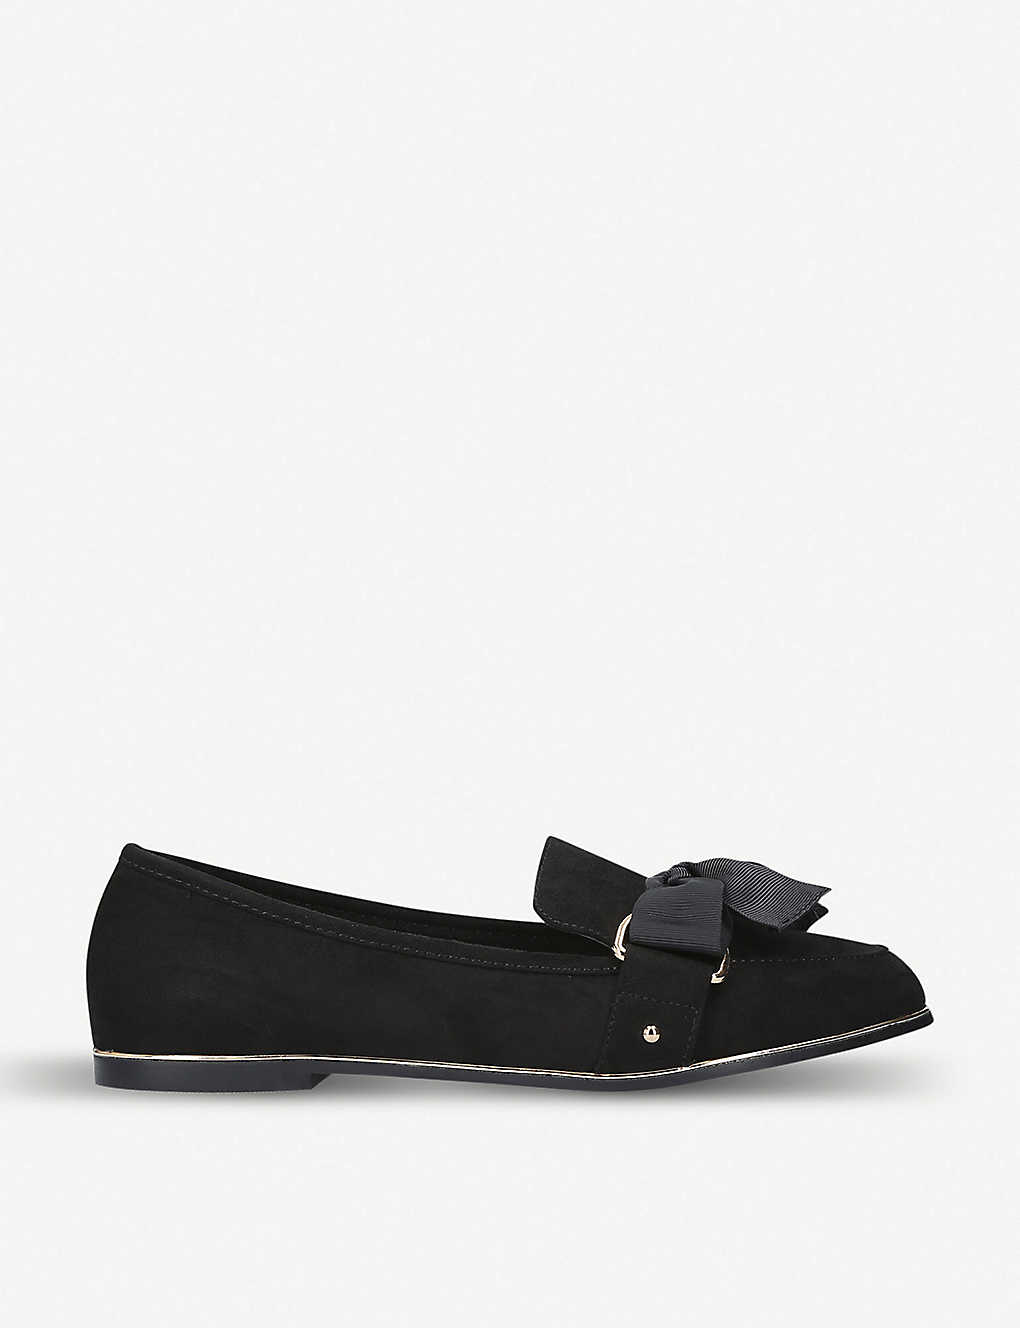 KG KURT GEIGER: Mable suede loafers